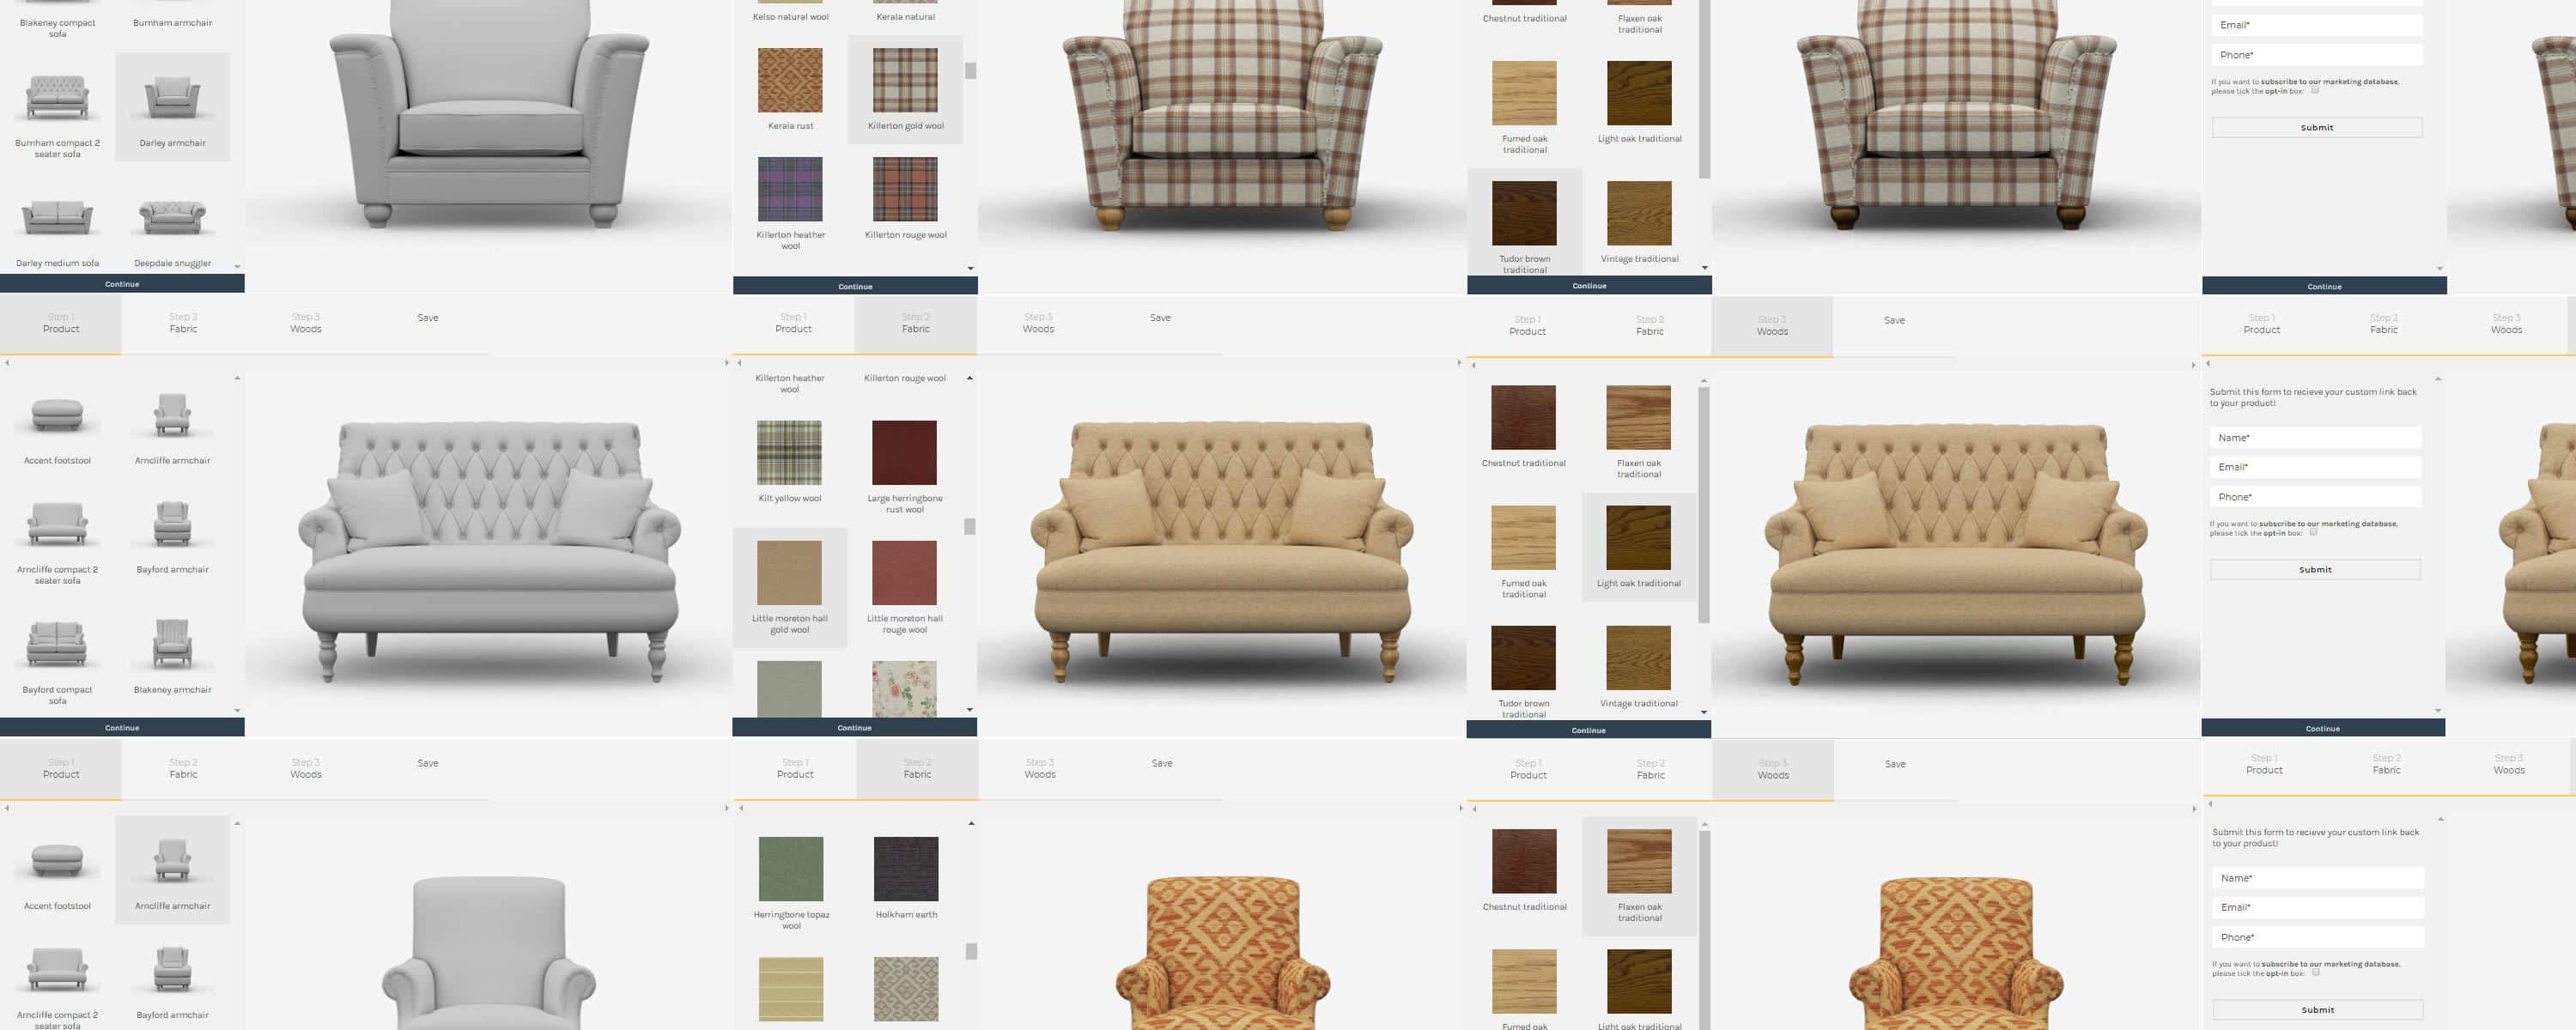 configurate your own armchair, design your own chair, product customisator